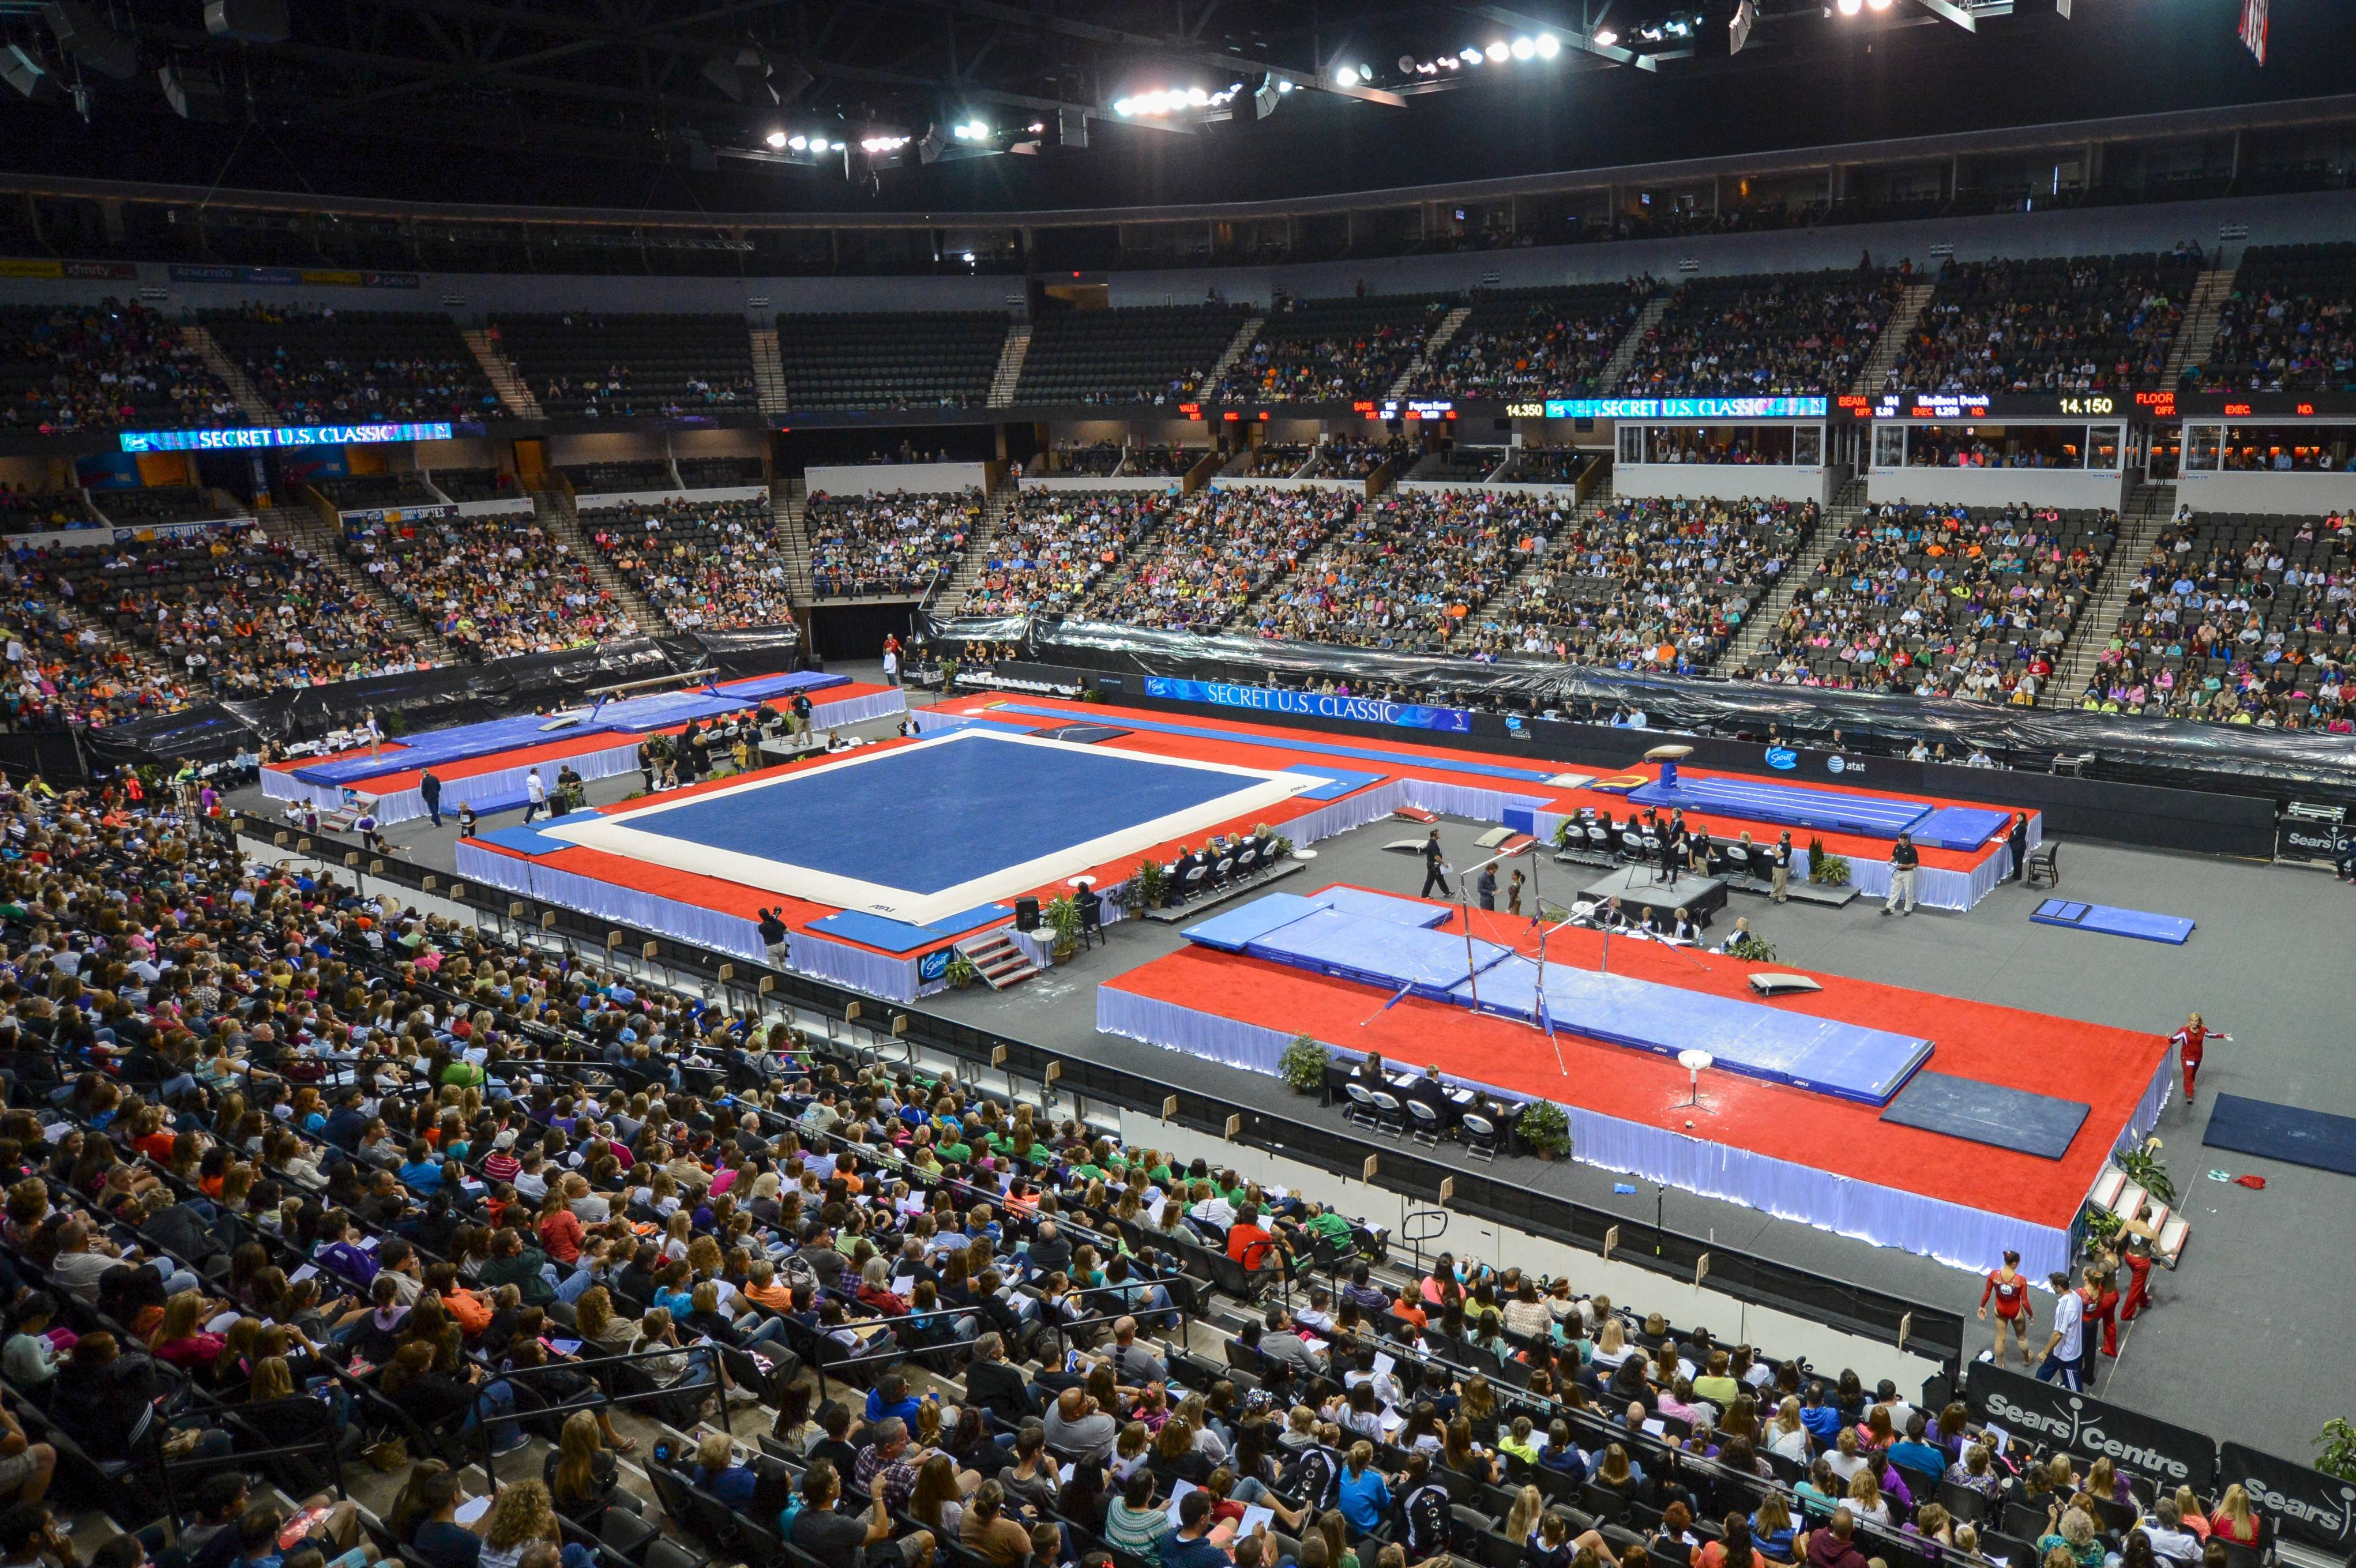 The Sears Centre Arena in Hoffman Estates will again host the Secret U.S. Classic gymnastics competition this year. Last year's event, the first held at the Sears Centre, was a big success, according to officials at USA Gymnastics.